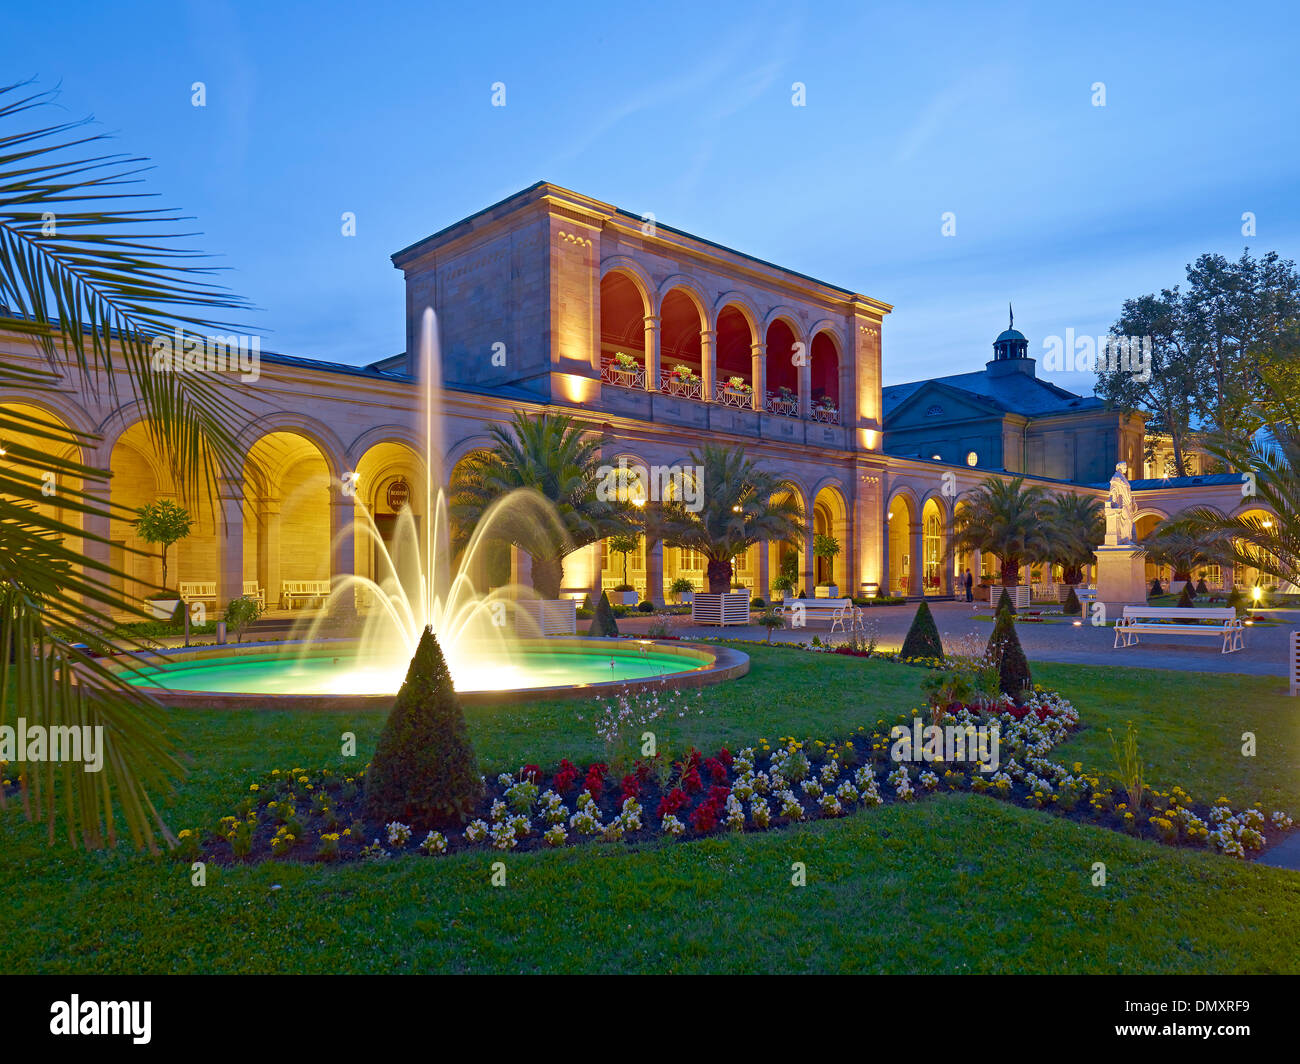 Arcaded building at the spa gardens in Bad Kissingen, Lower Franconia, Bavaria, Germany - Stock Image